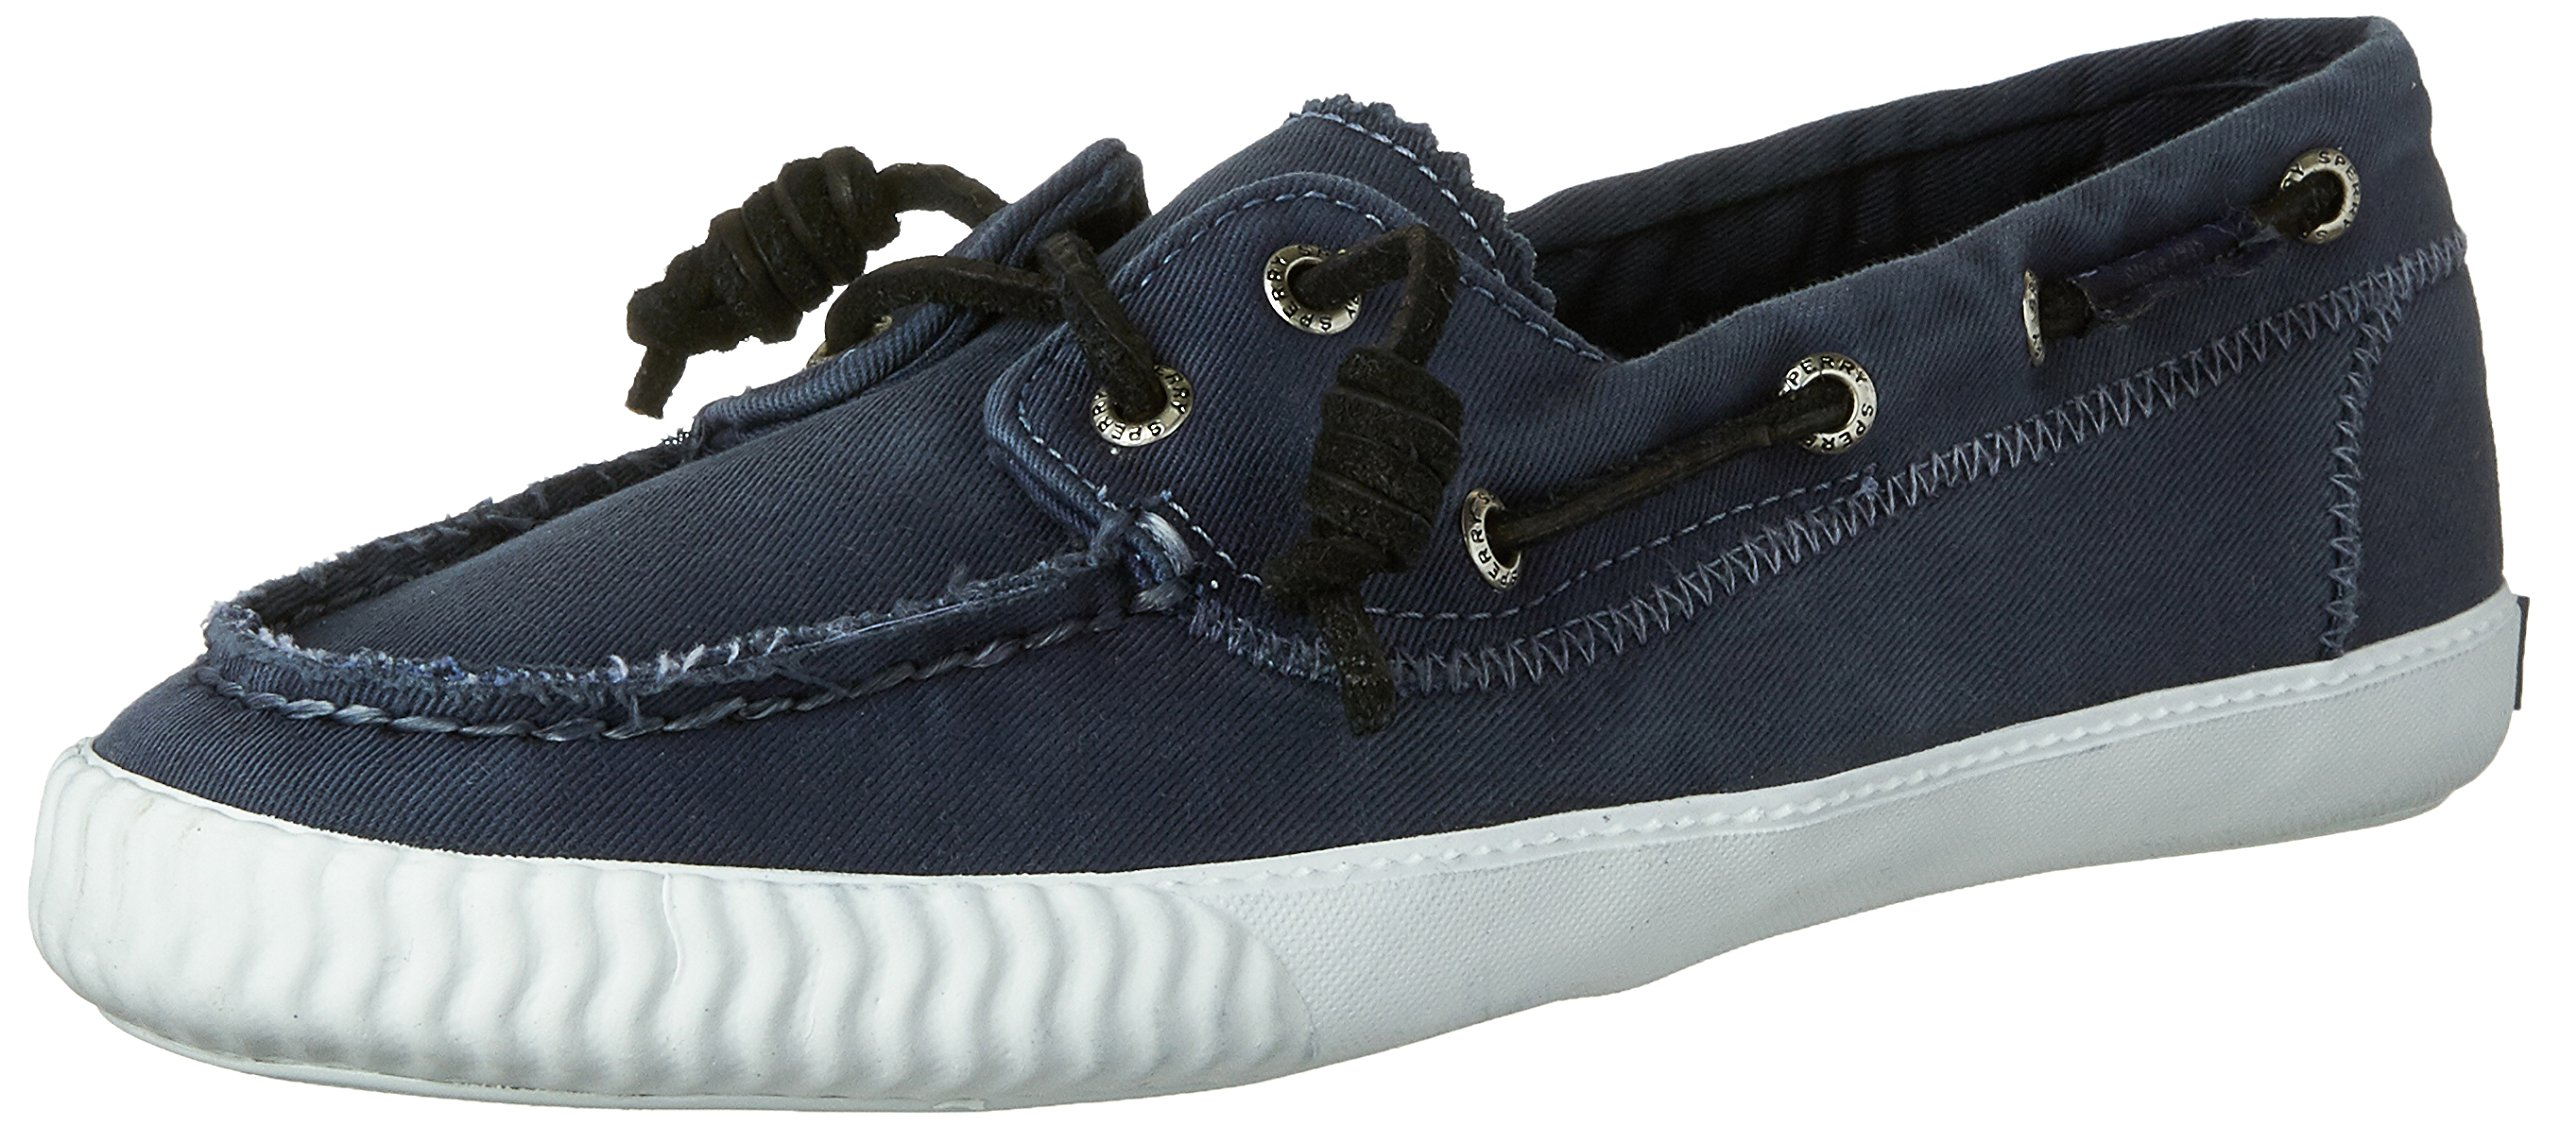 Sperry Top-Sider Women's Sayel Away Washed Navy Boat Shoe 9 M (B)